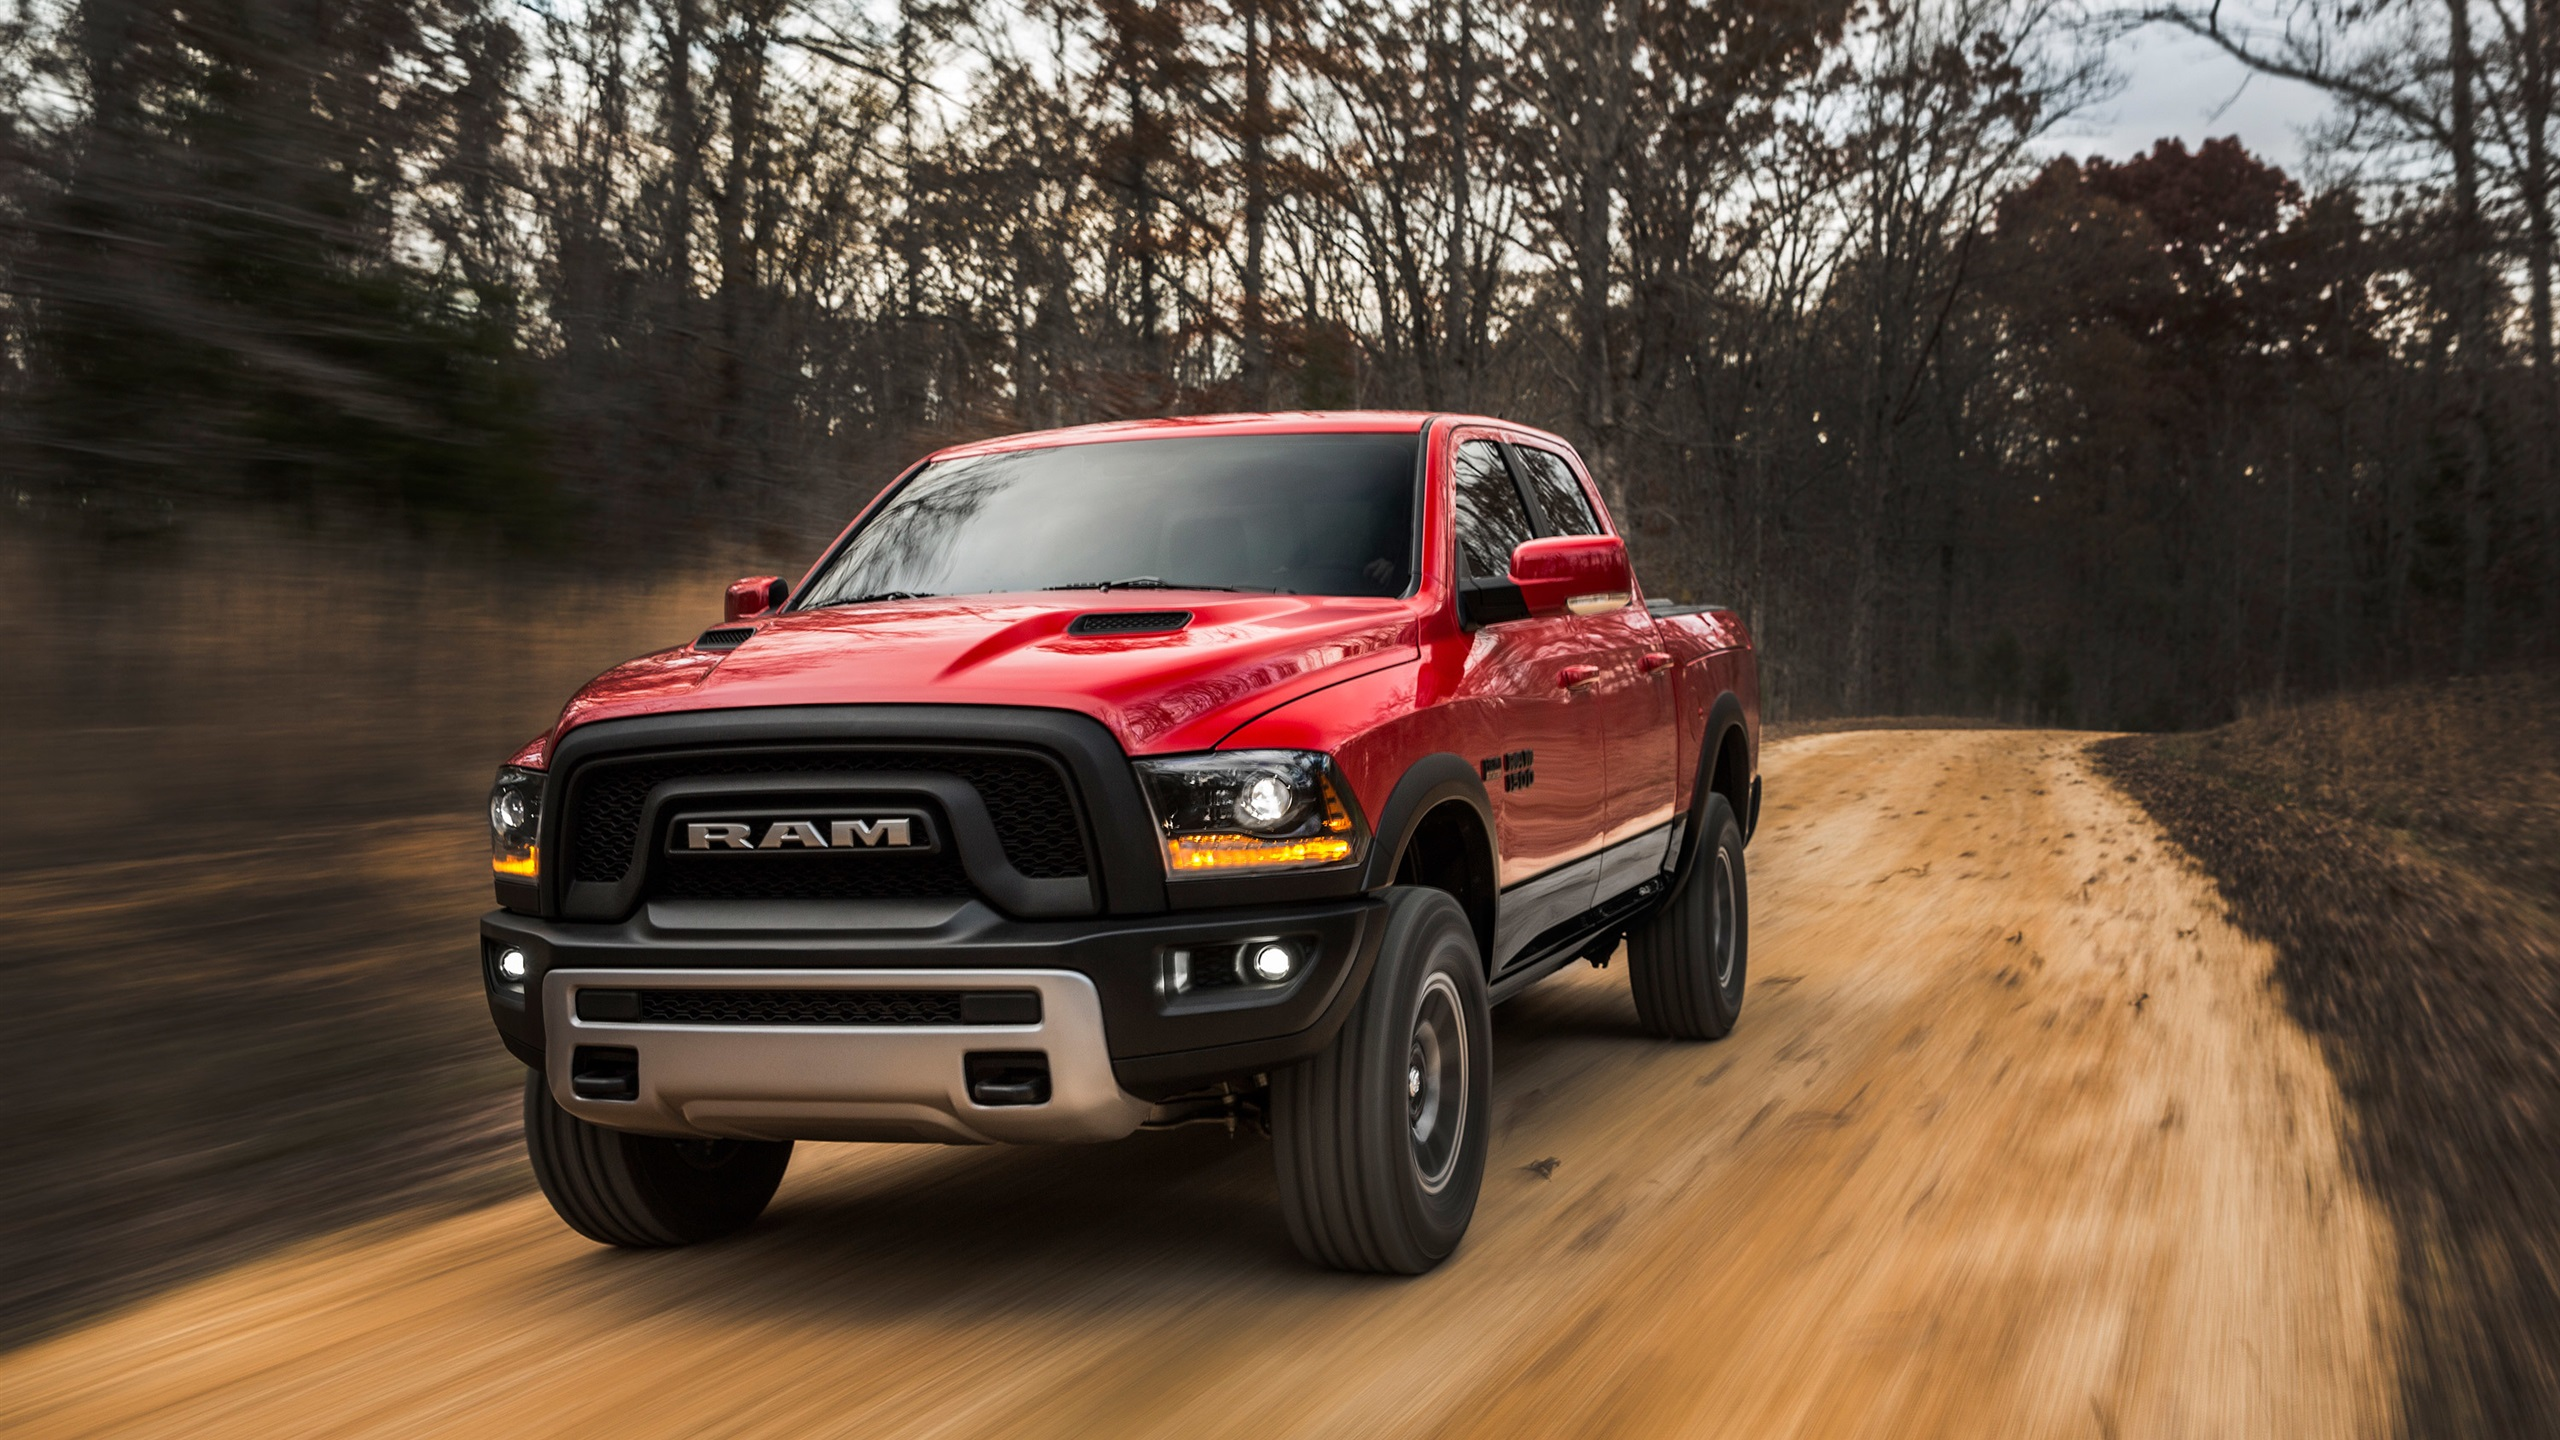 Wallpaper Dodge Ram 1500 Red Pickup Speed 2880x1800 Hd Picture Image